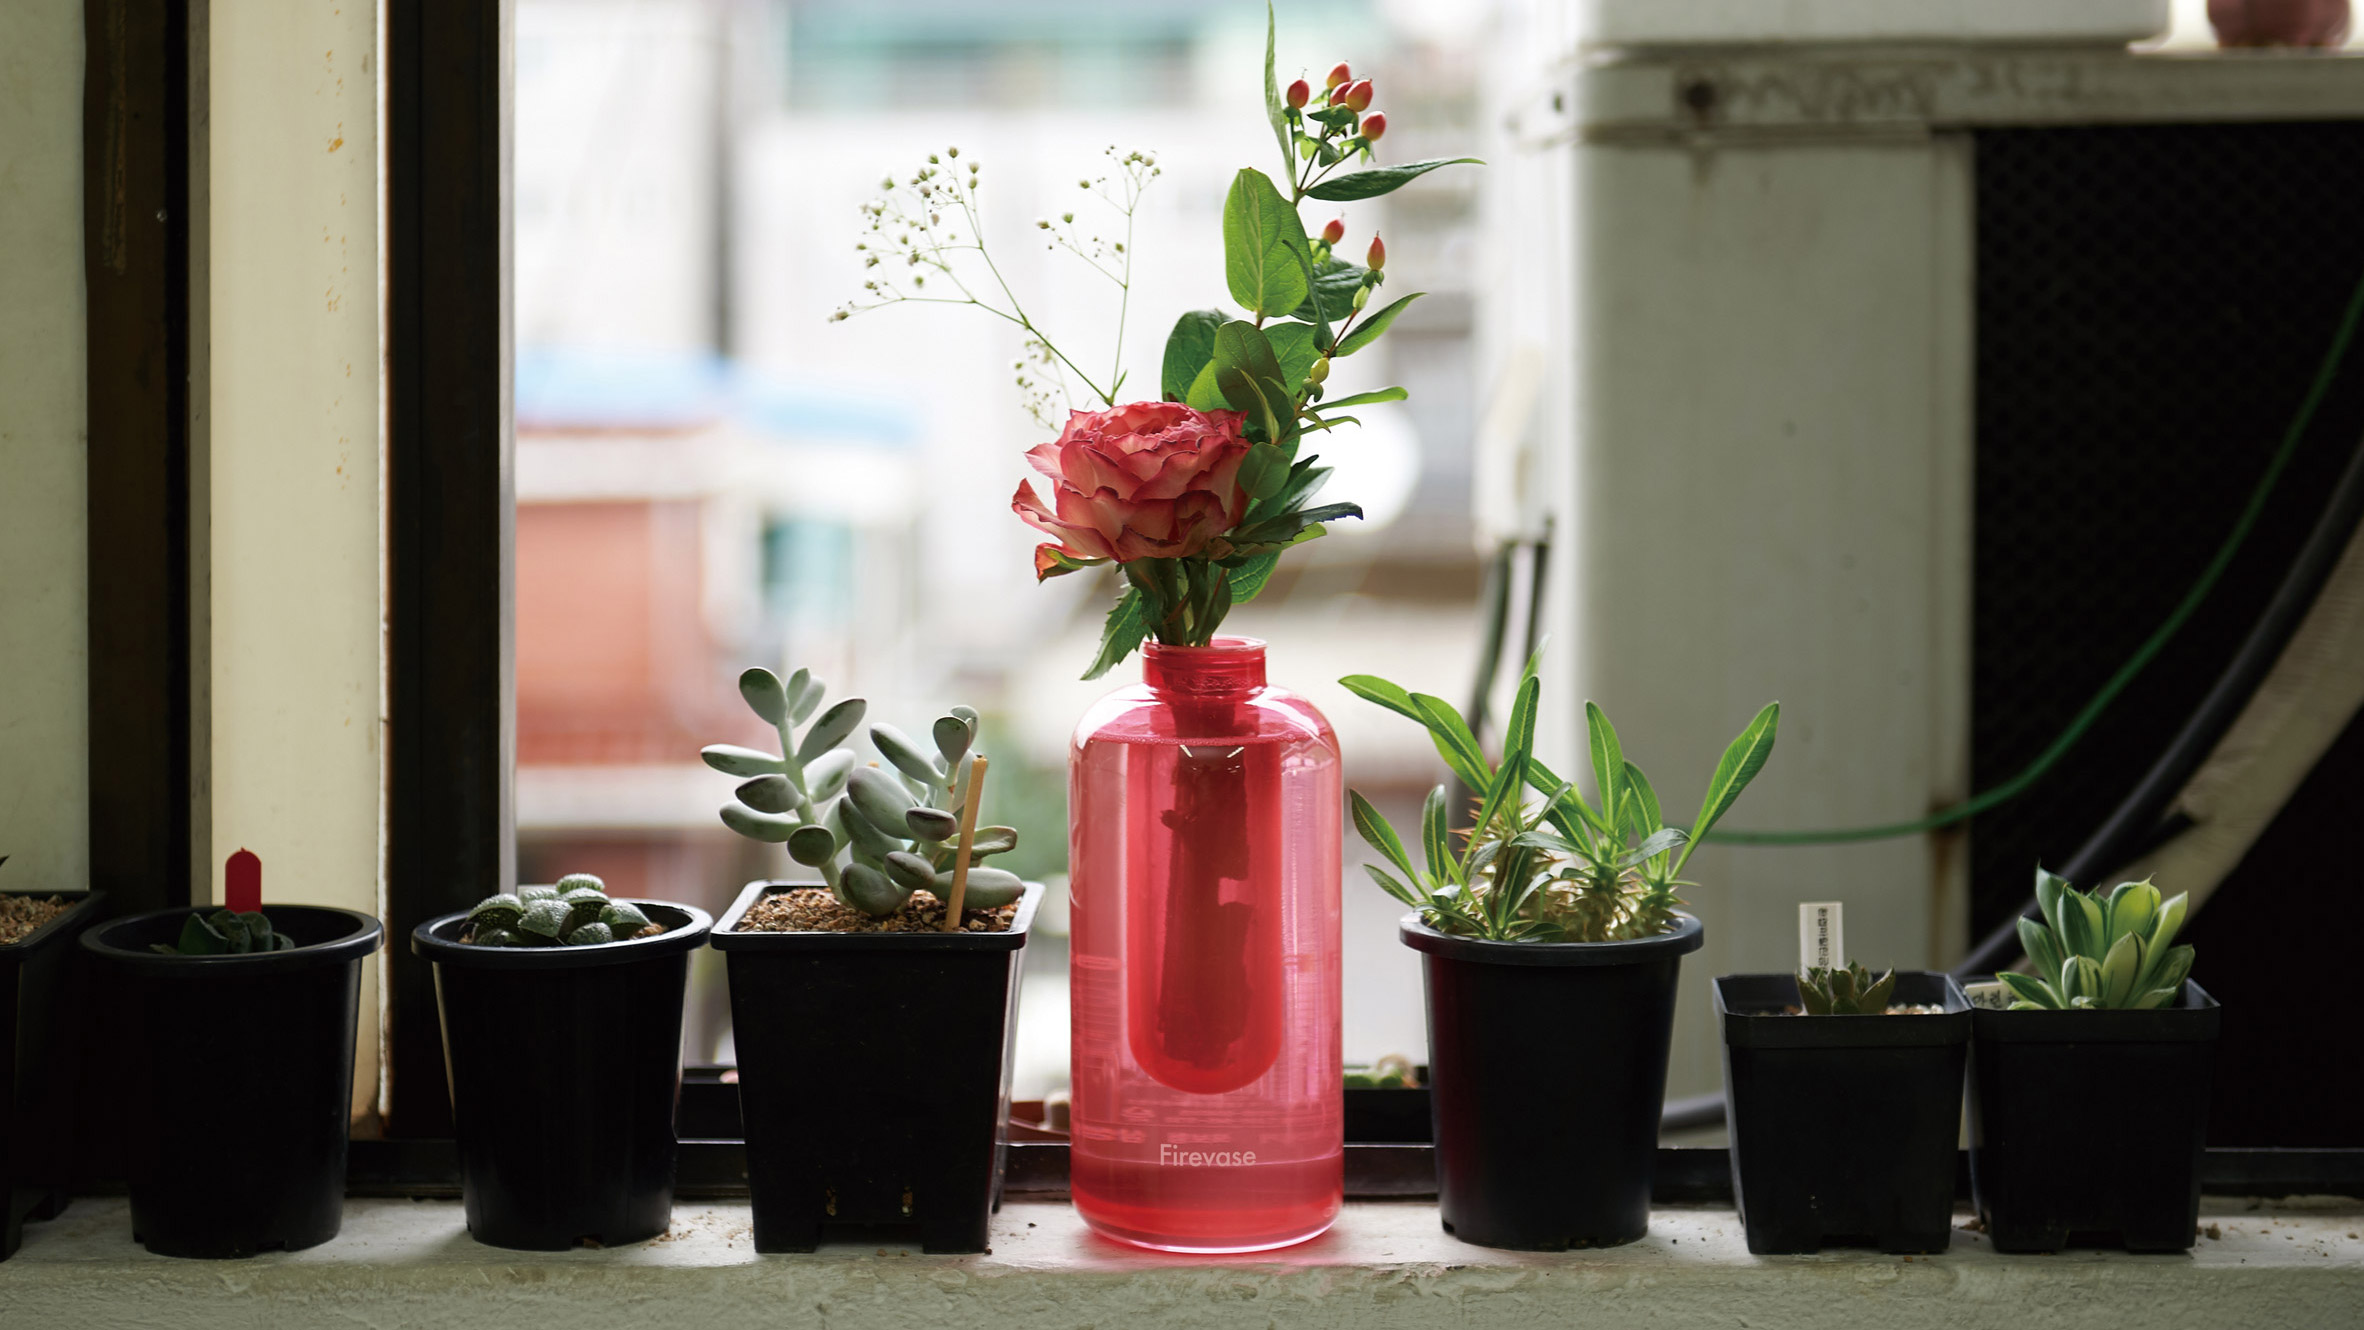 Firevase is a vase that doubles as a fire extinguisher